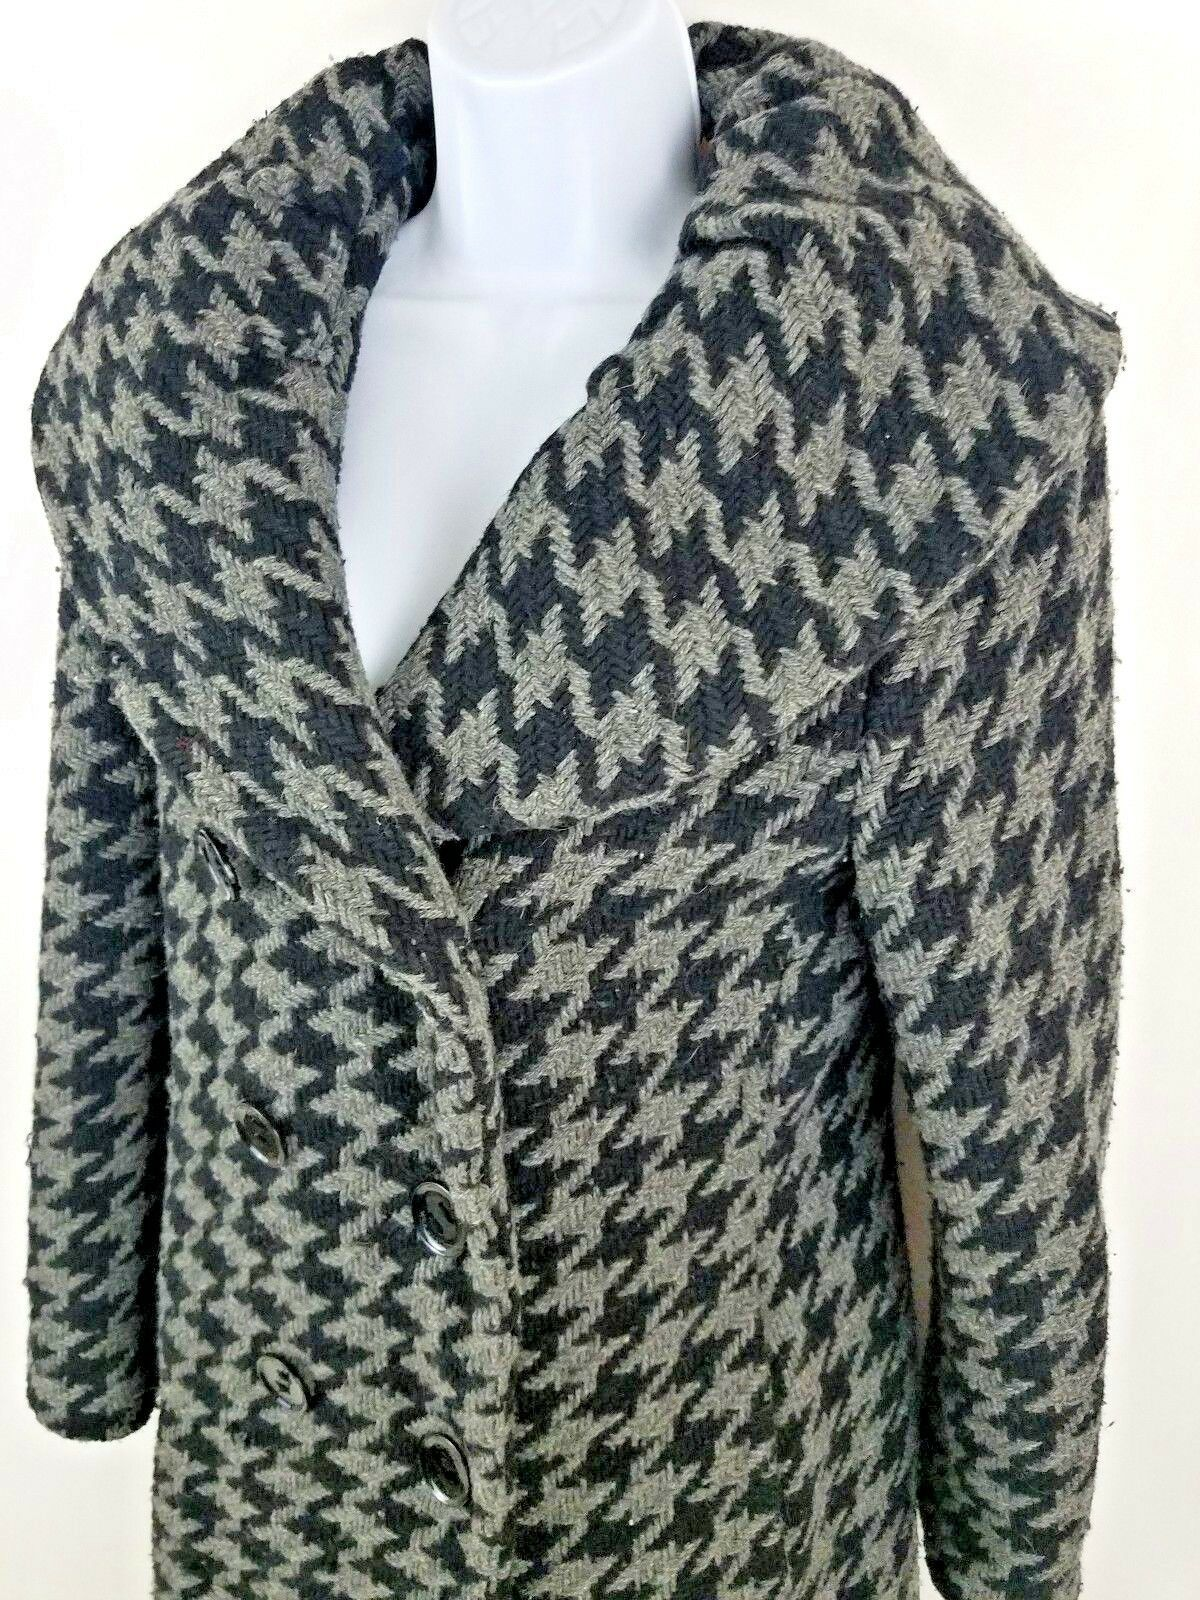 Calvin Klein Houndstooth Double Breasted Gray Wool Blend Long Coat Jacket Sz 6